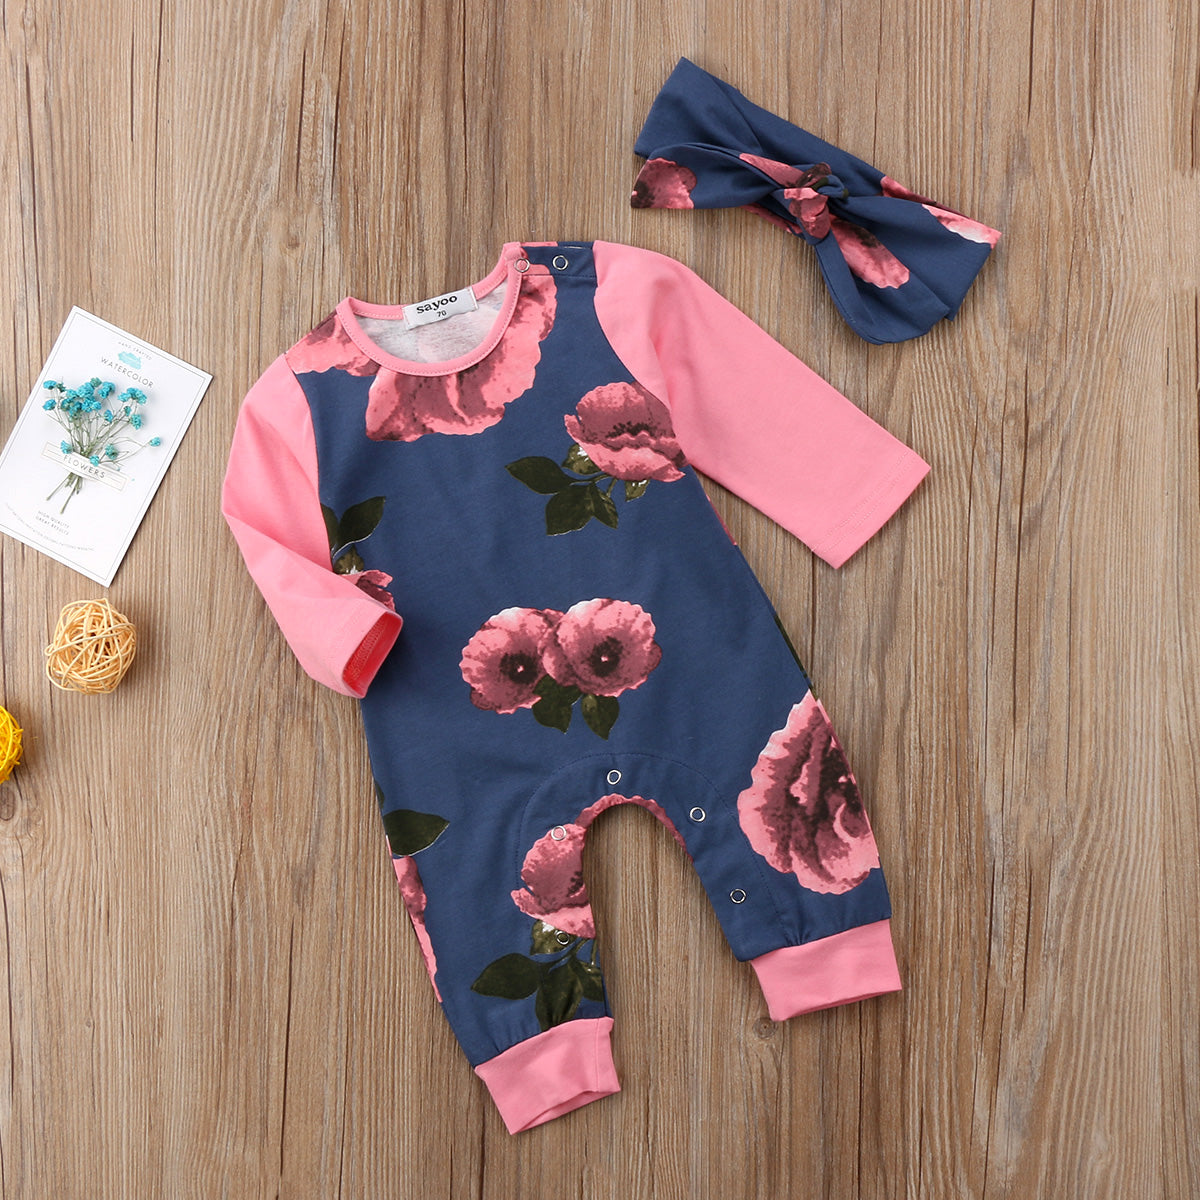 Newborn Baby Girls Flower Floral long Sleeve Rompers Jumpsuit casual Outfits Set Clothes 0-24M - Your Baby's Closet